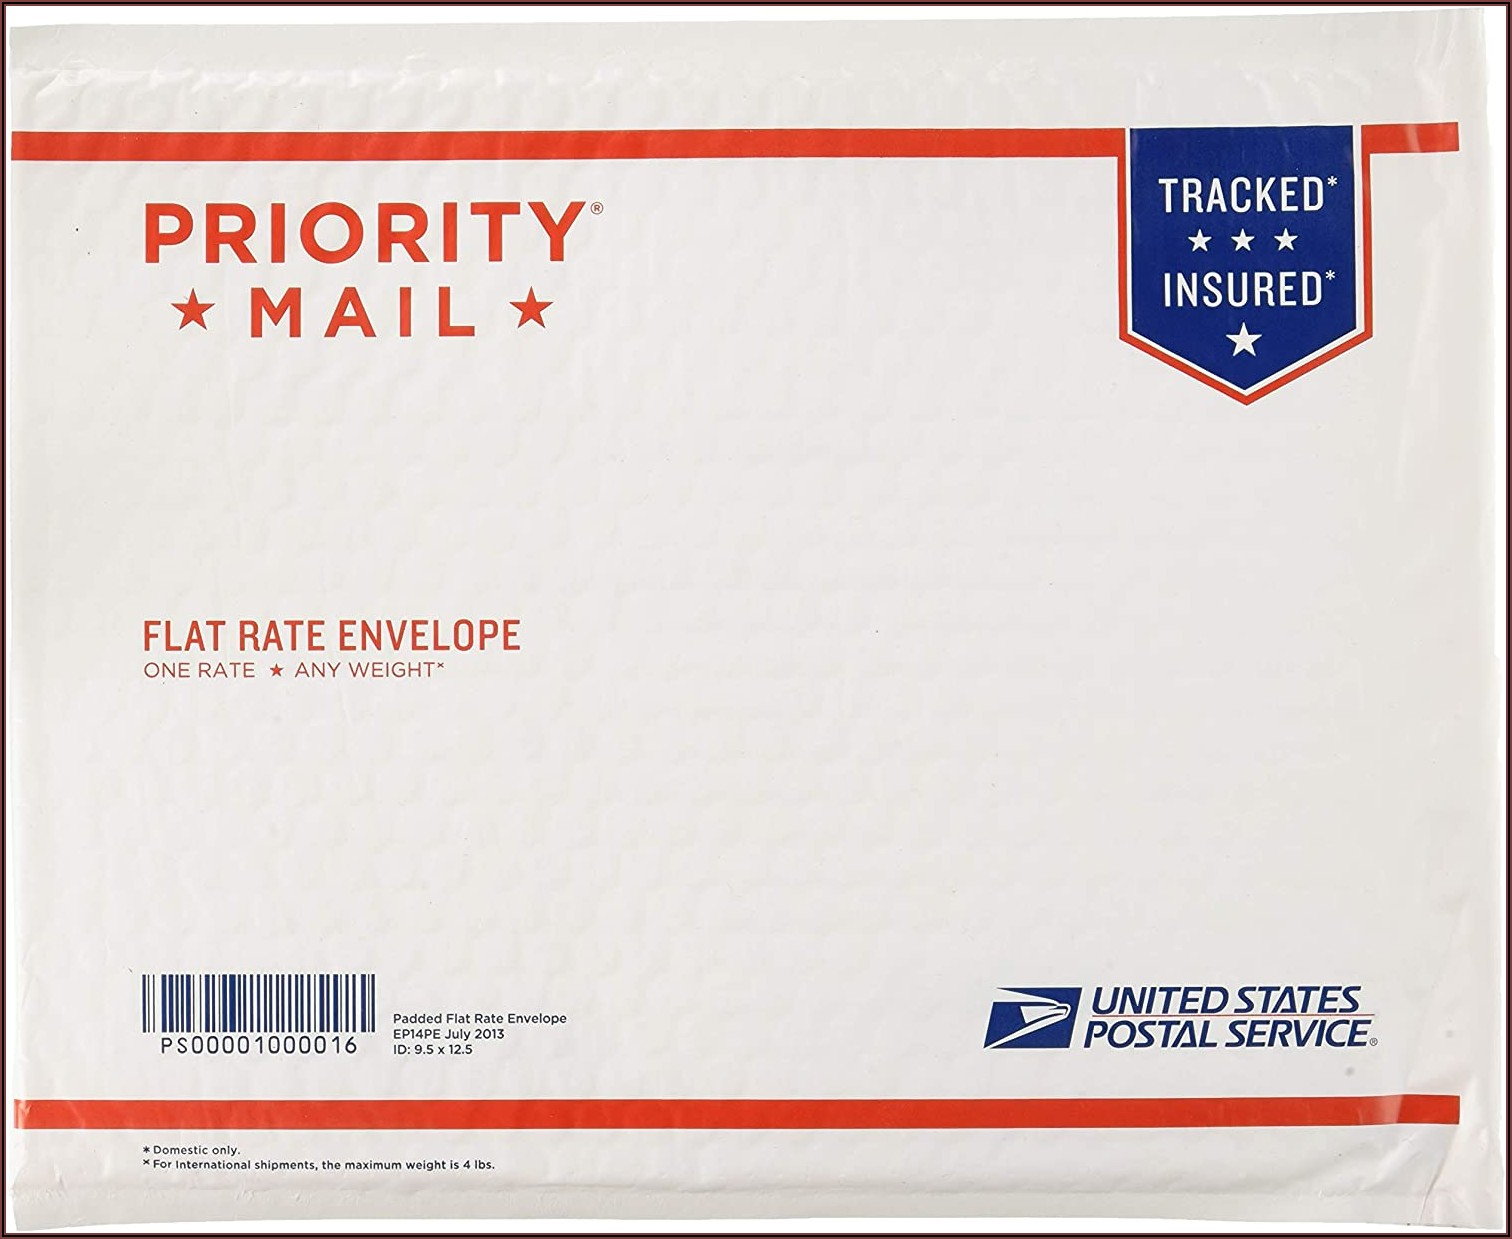 Usps Priority Mailing Envelope Sizes